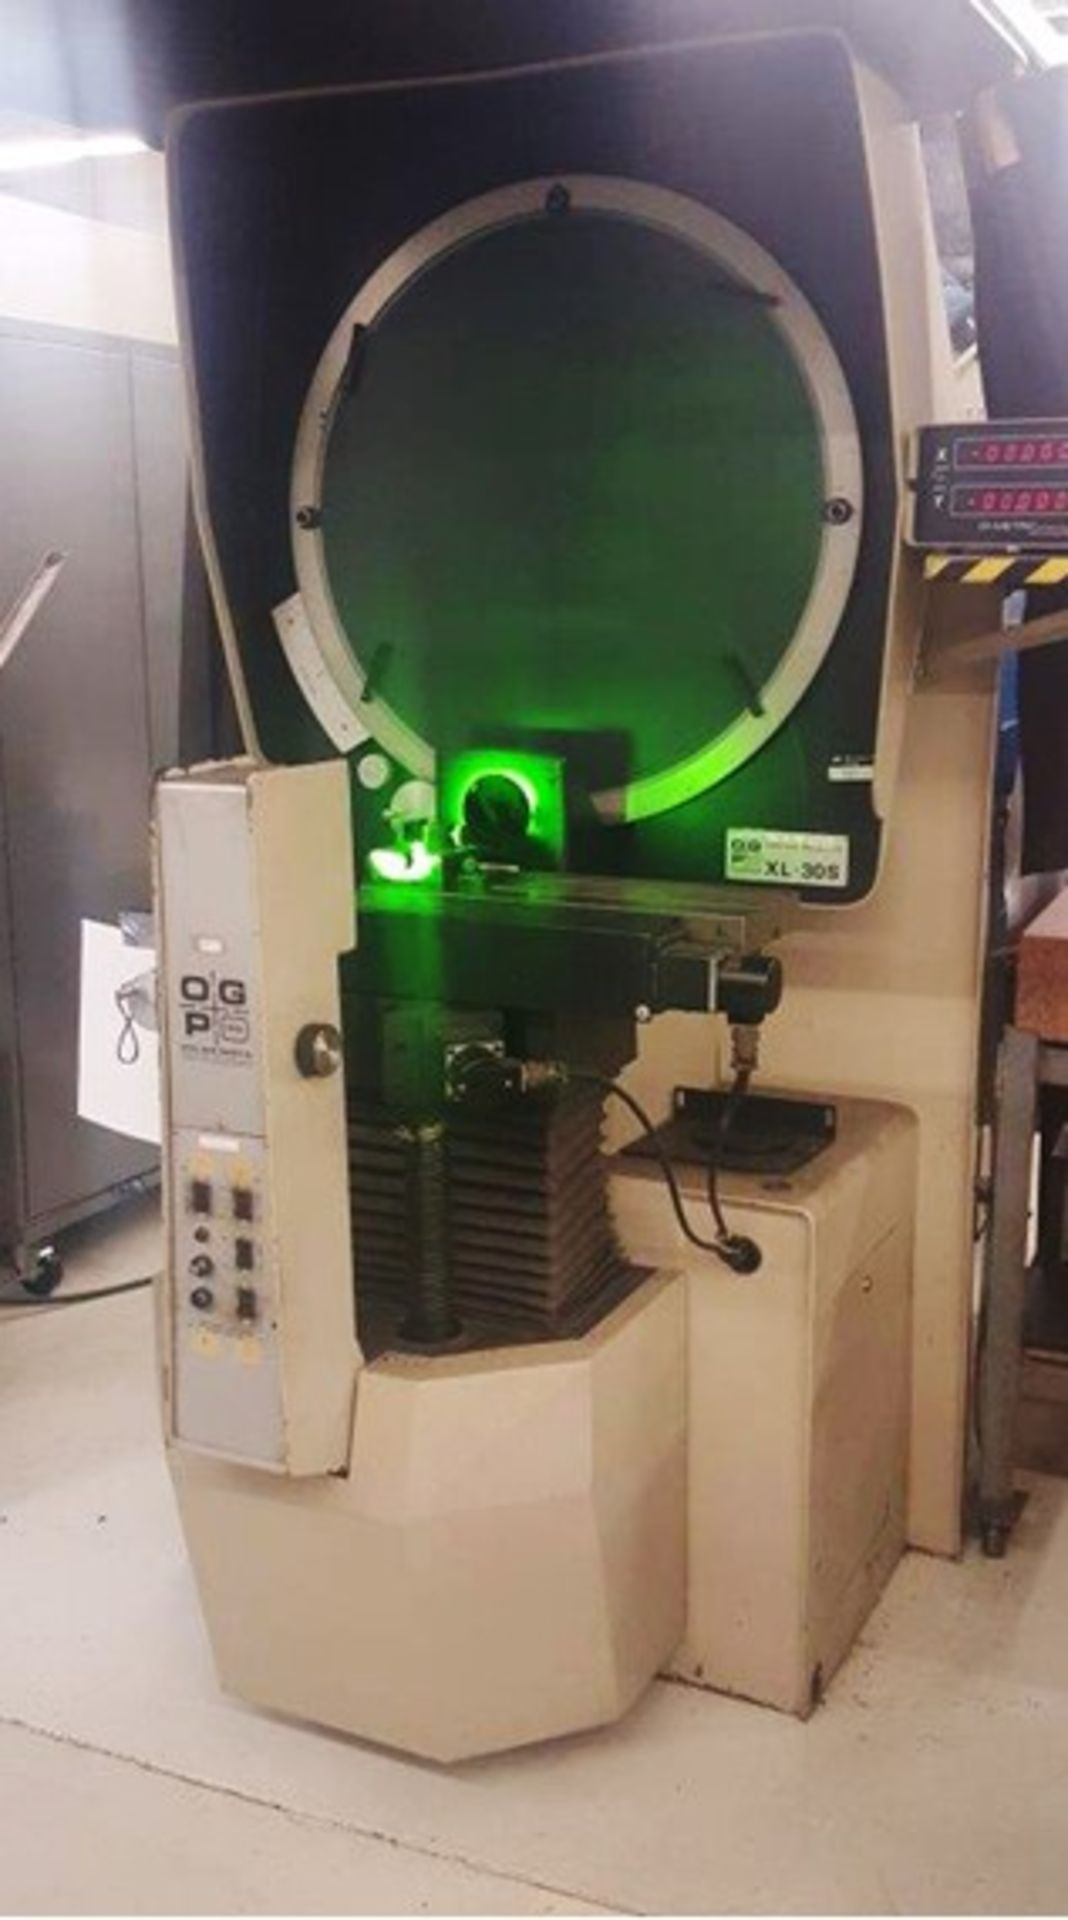 "OGP 30"" Optical Comparator Projector, Model IXL-827, XL30S, S/N 8270292, under power"